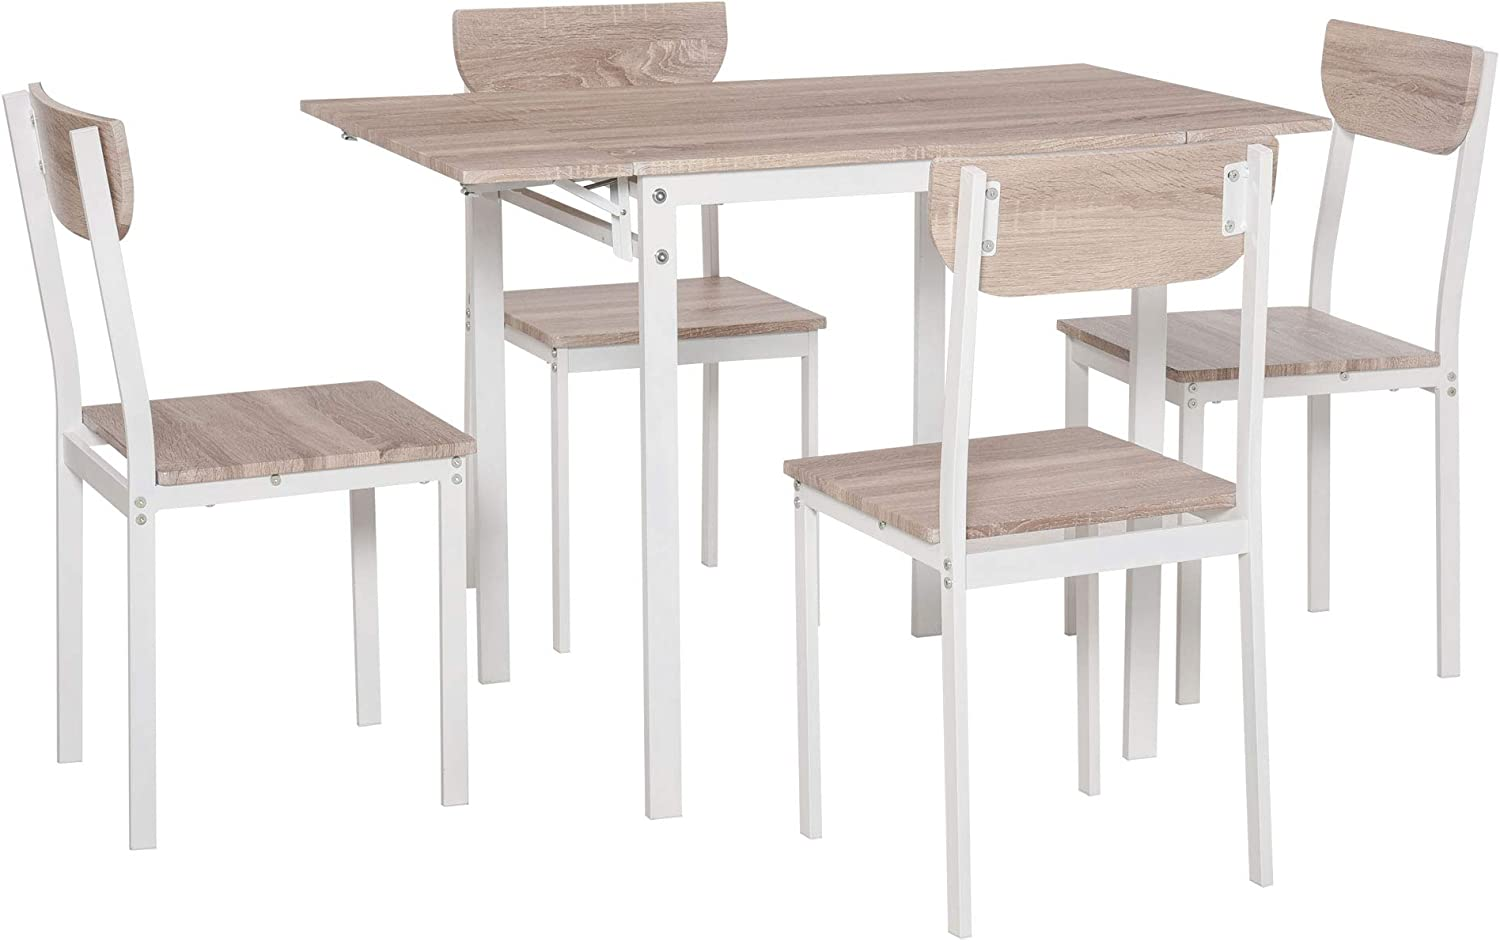 Buy HOMCOM Modern 9 Piece Dining Table Set for 9 with Foldable ...